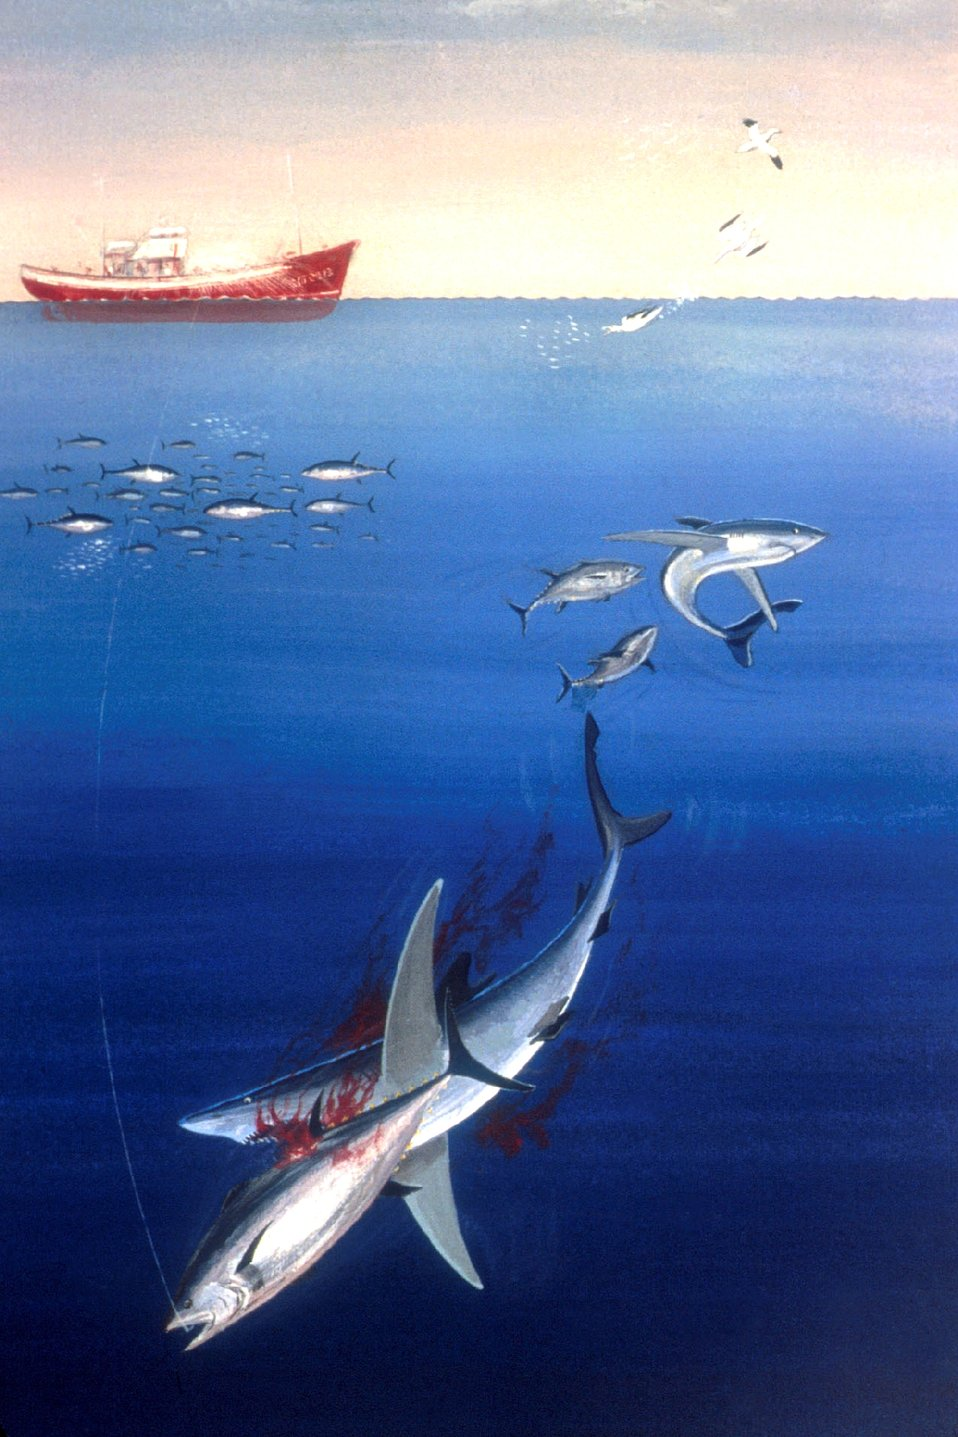 Tuna hooked by pole and line fishing makes easy prey for an opportunistic shark.